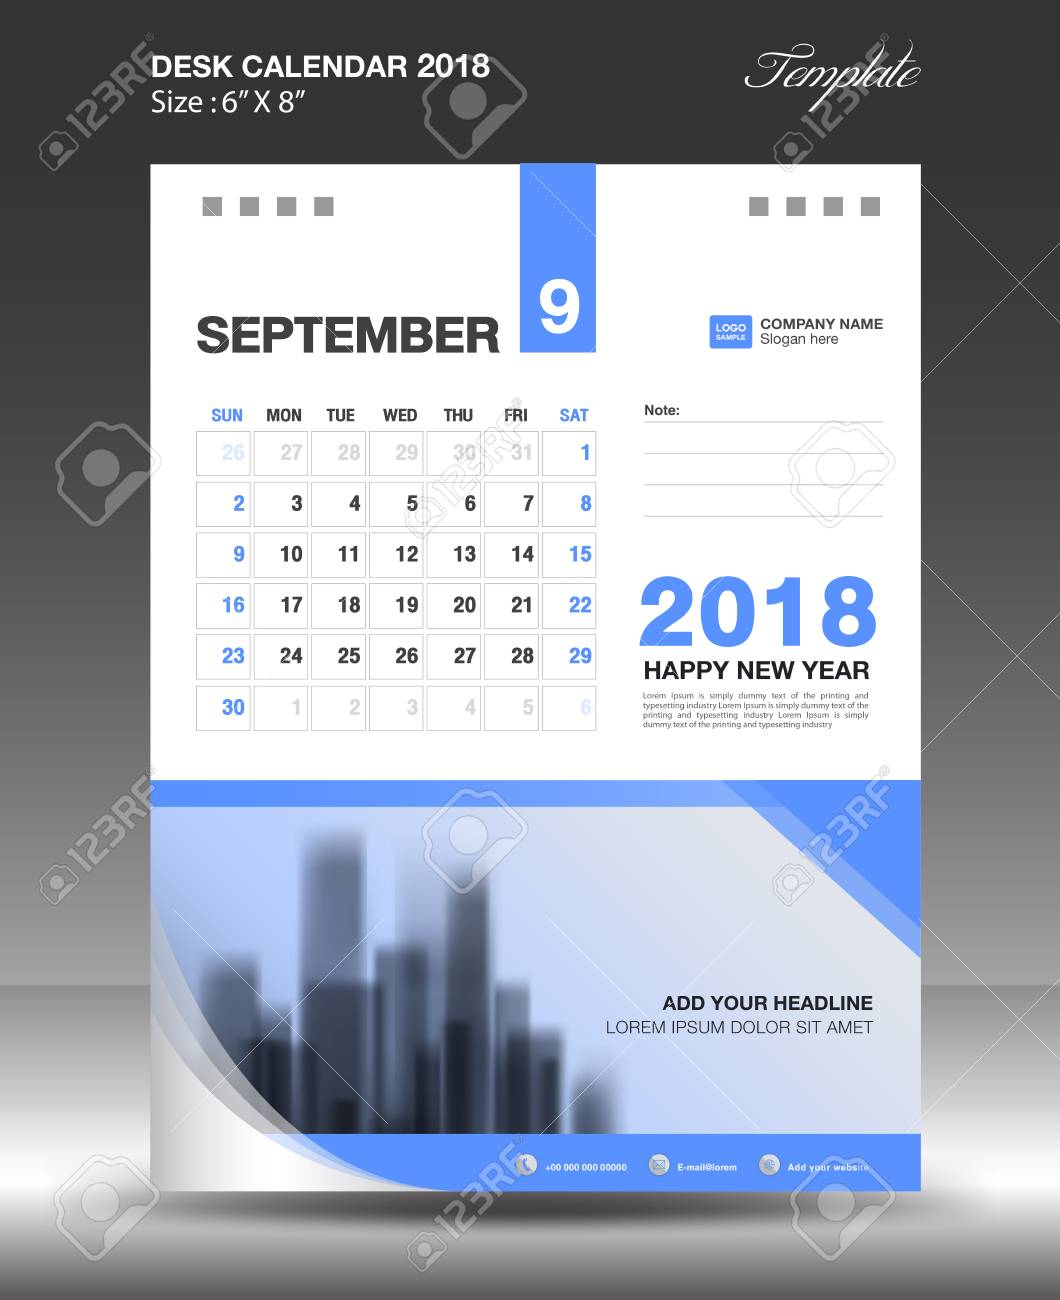 SEPTEMBER Desk Calendar 2018 Template Design Flyer Vector, Business ...